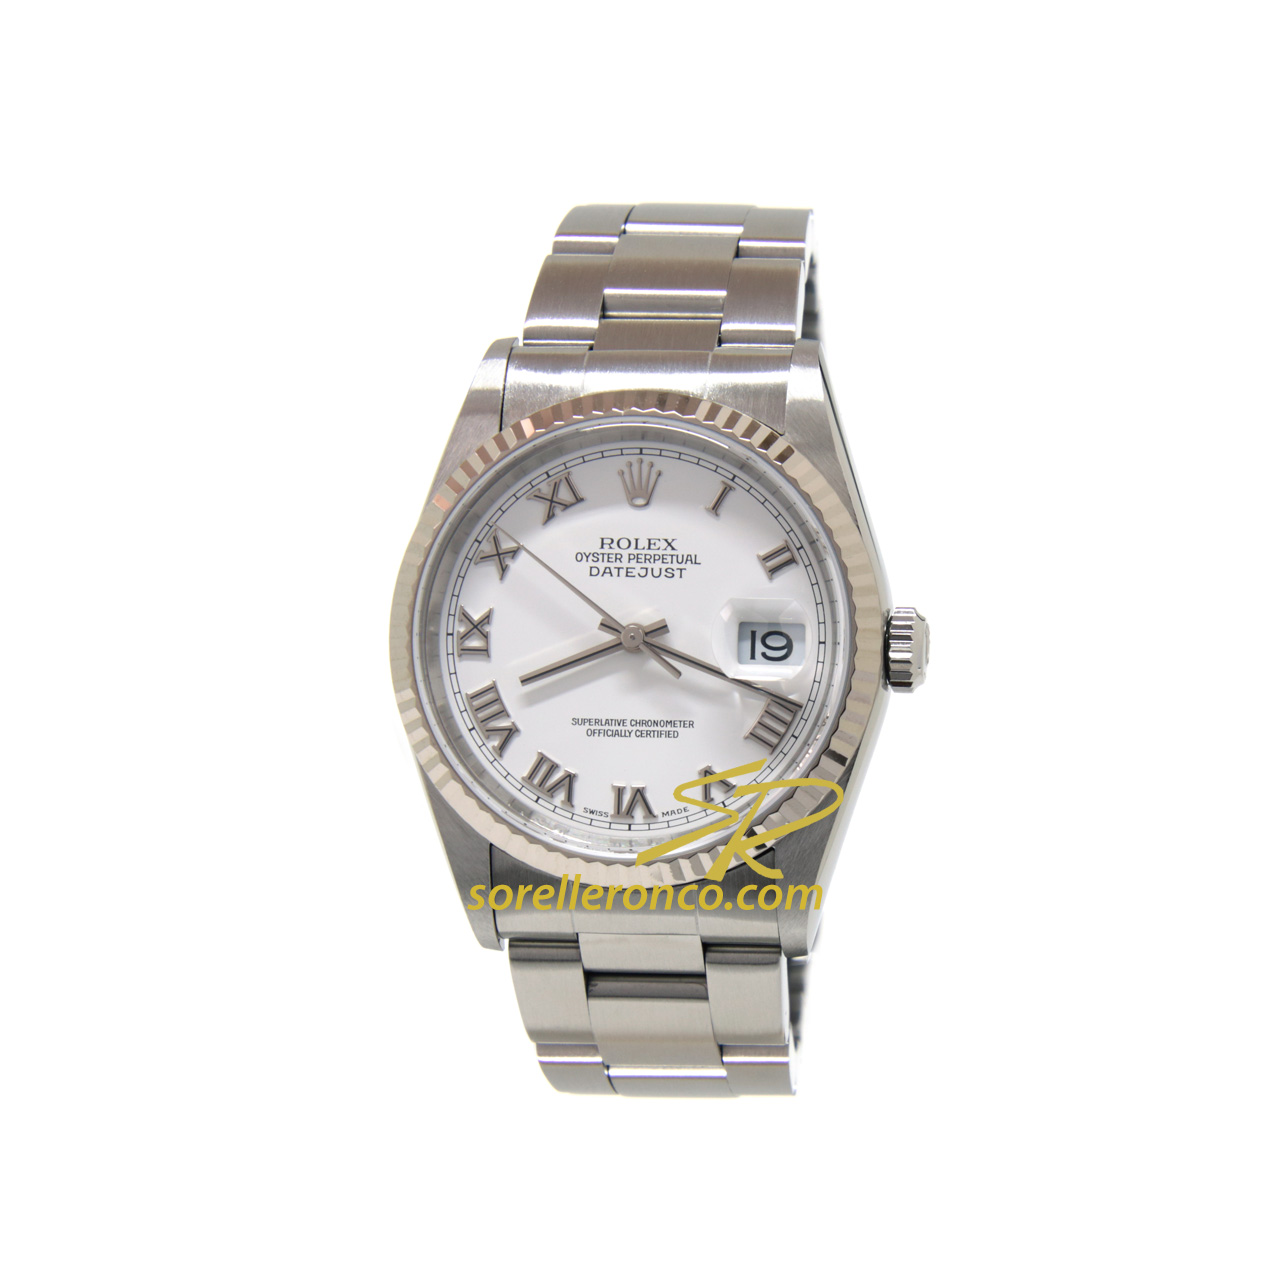 Datejust 36mm Bianco Romani